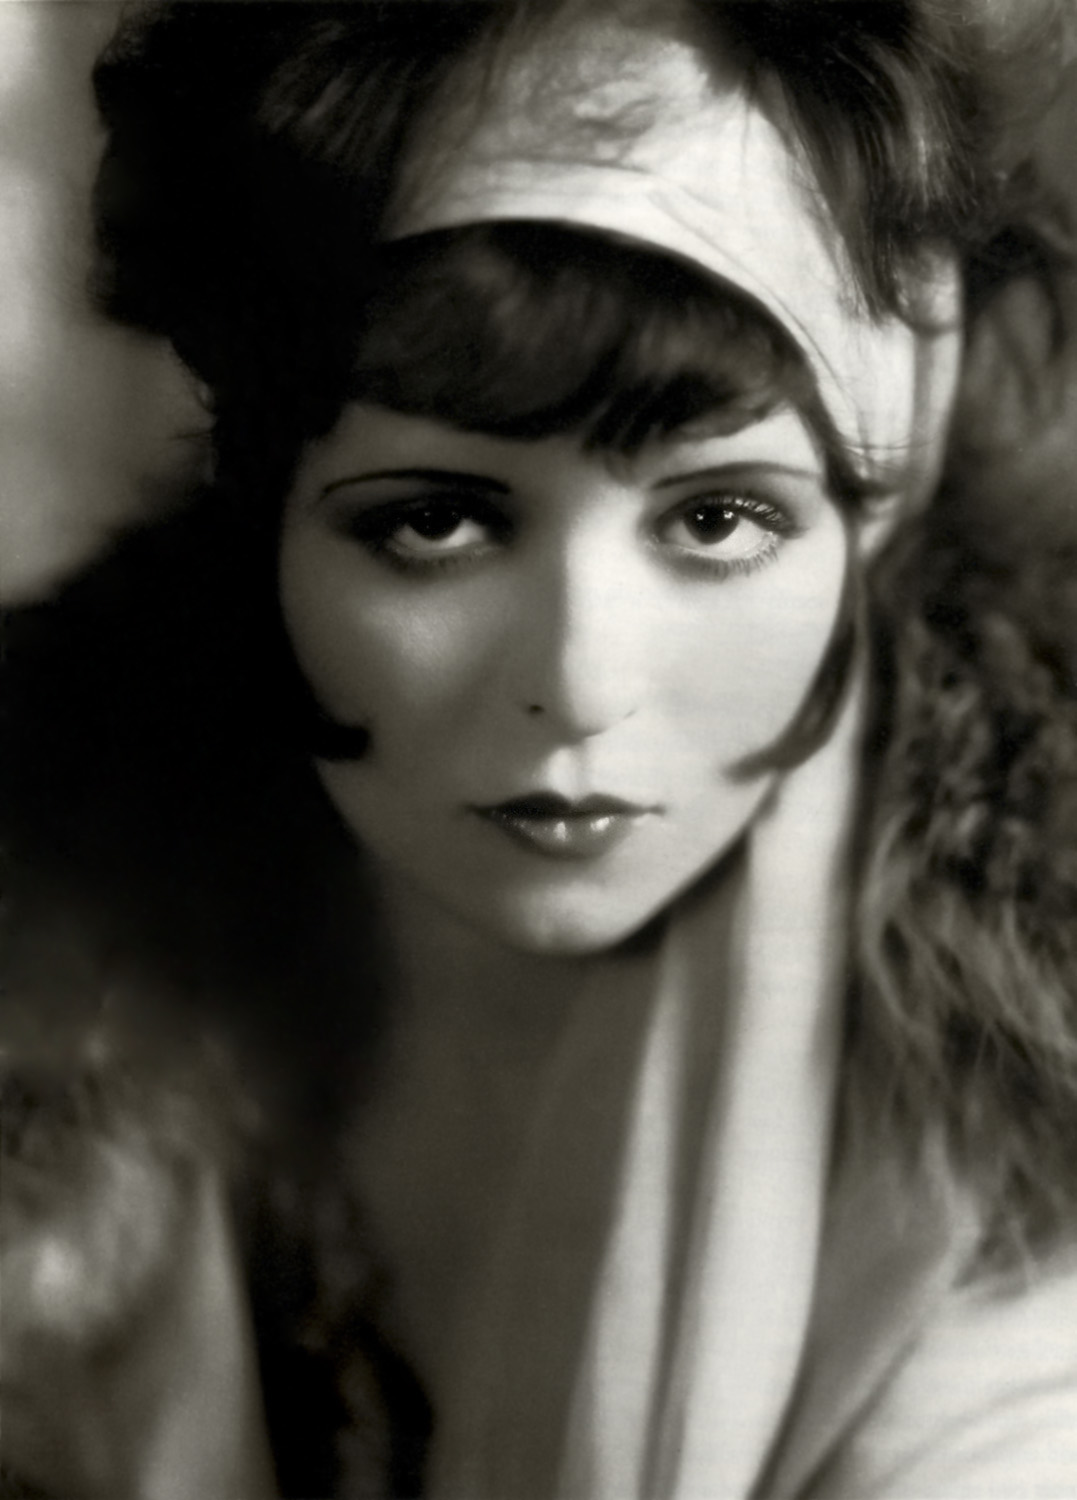 Clara Bow (1905 – 1965), one of the most famous rising stars of silent movie era. Her look inspired thousends of young women making their first approach to make-up products.